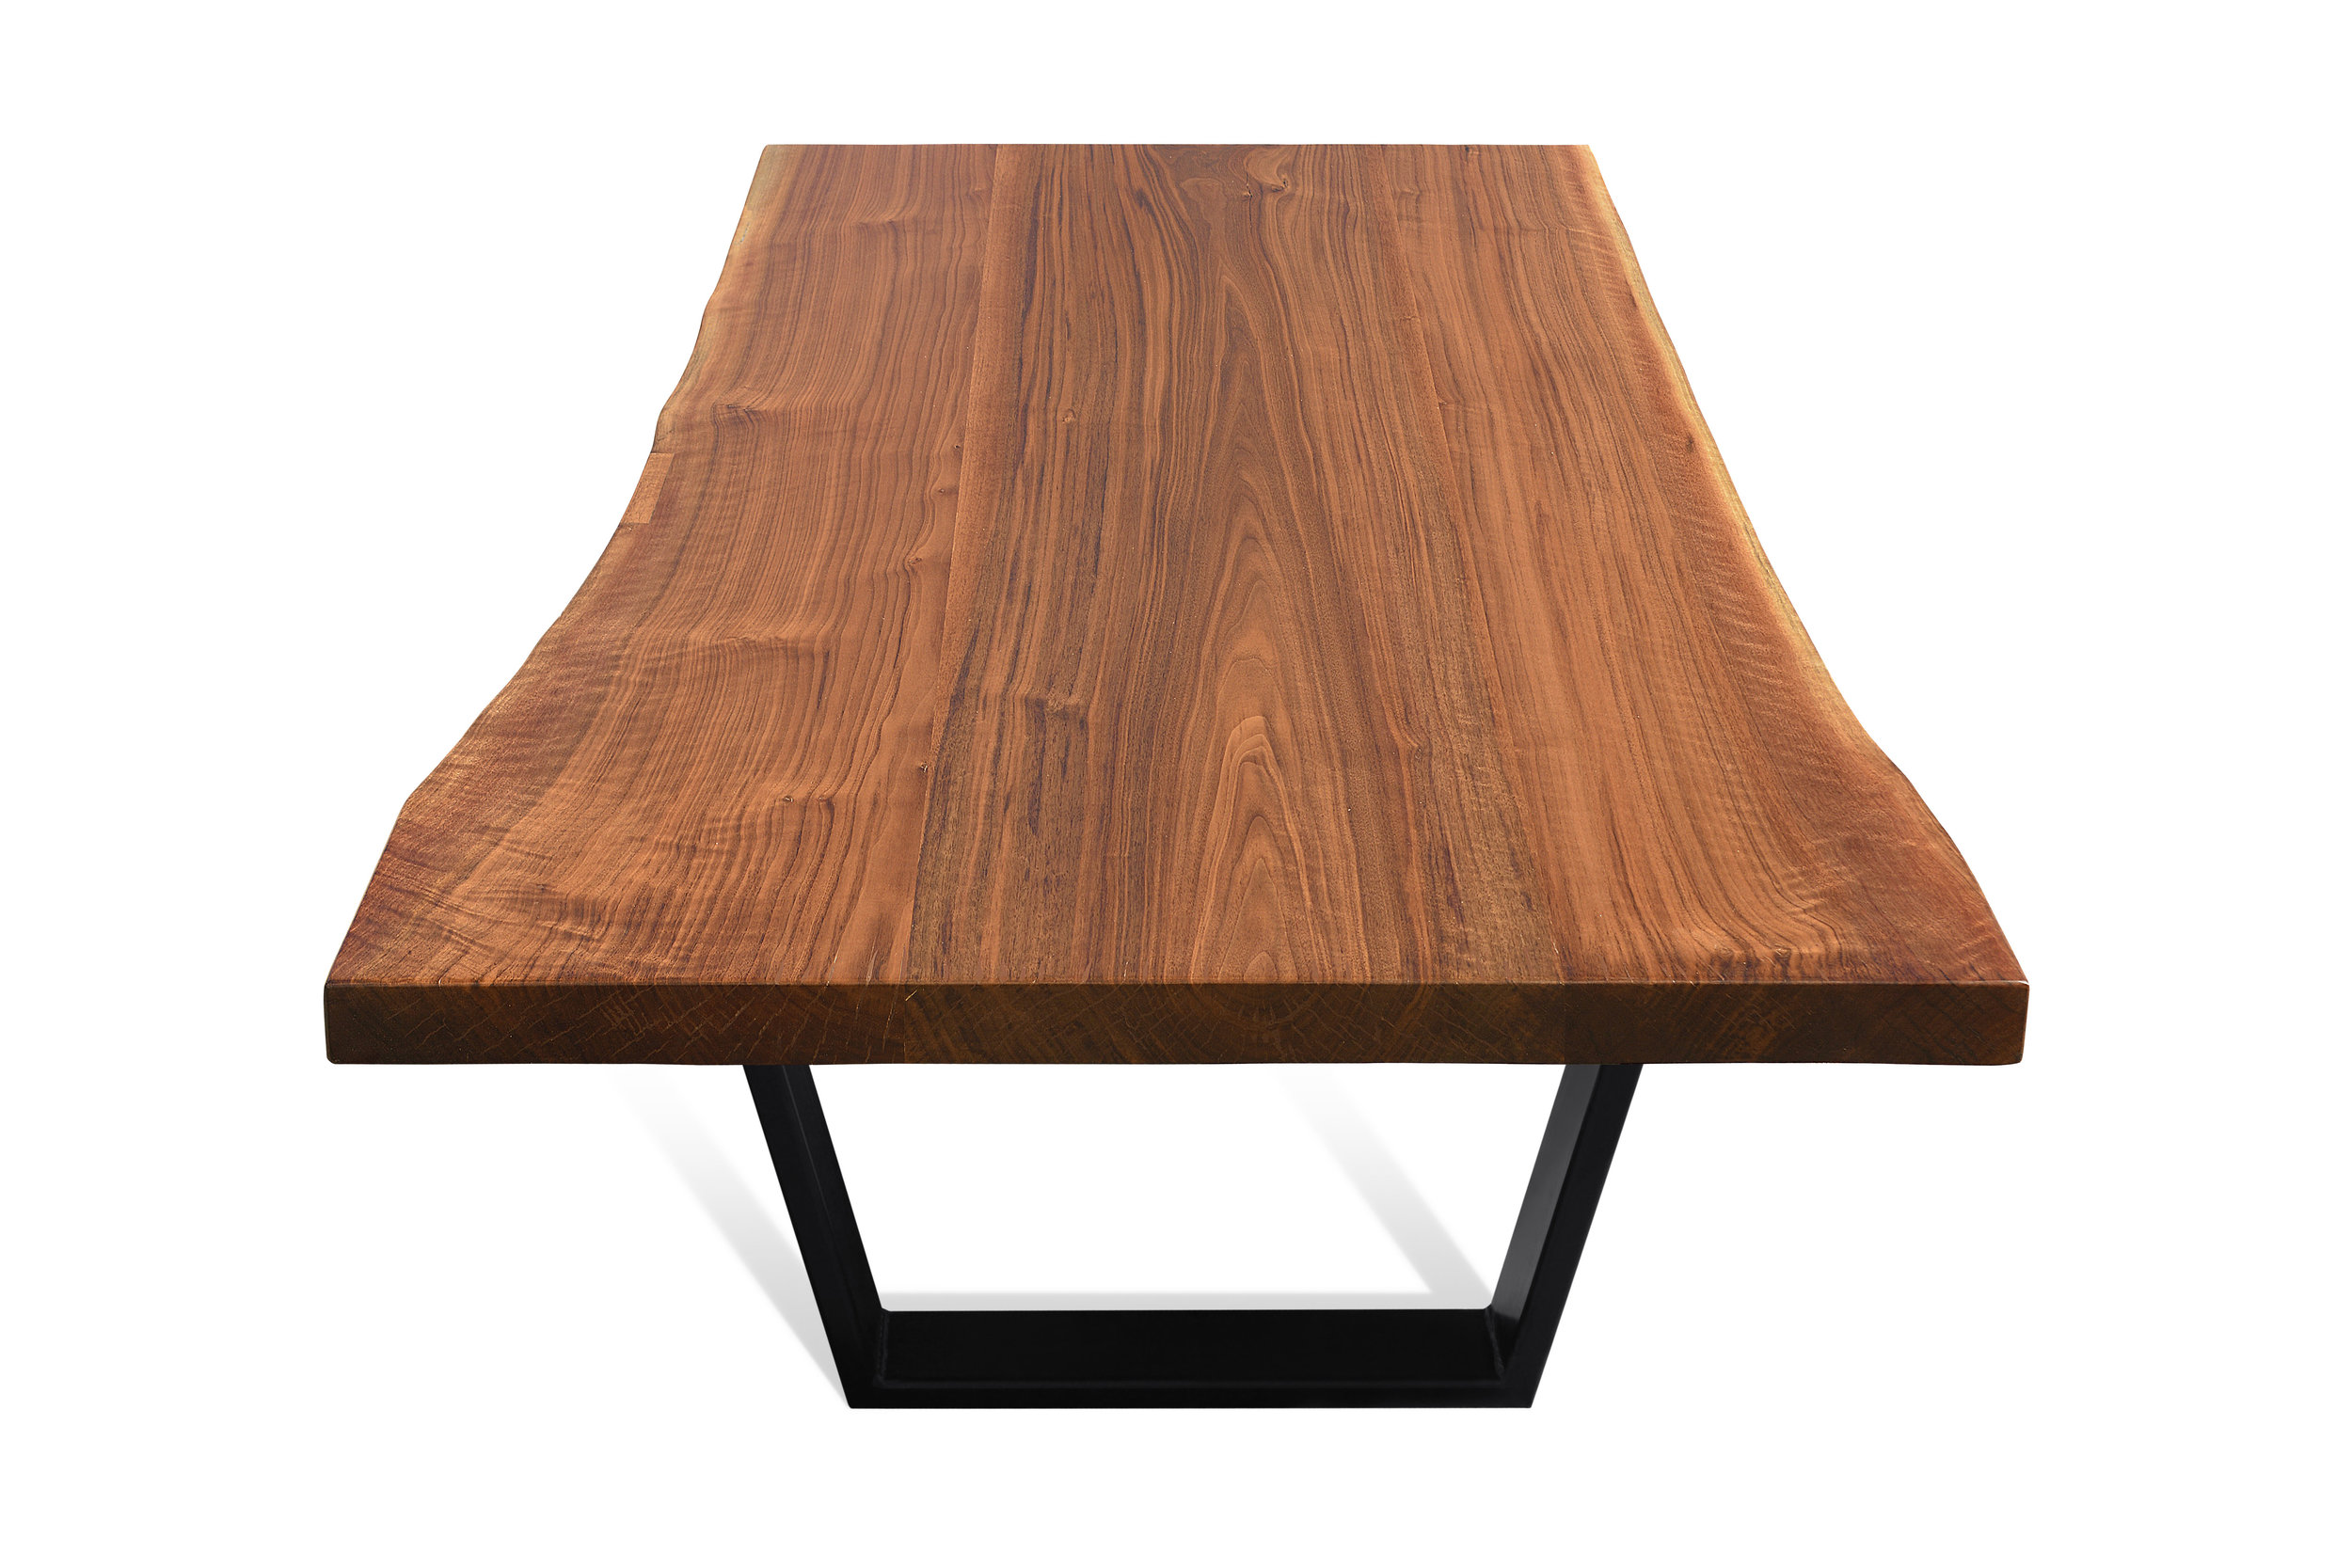 Etz & Steel Iris Live Edge Walnut Coffee Table Black Base 3.JPG